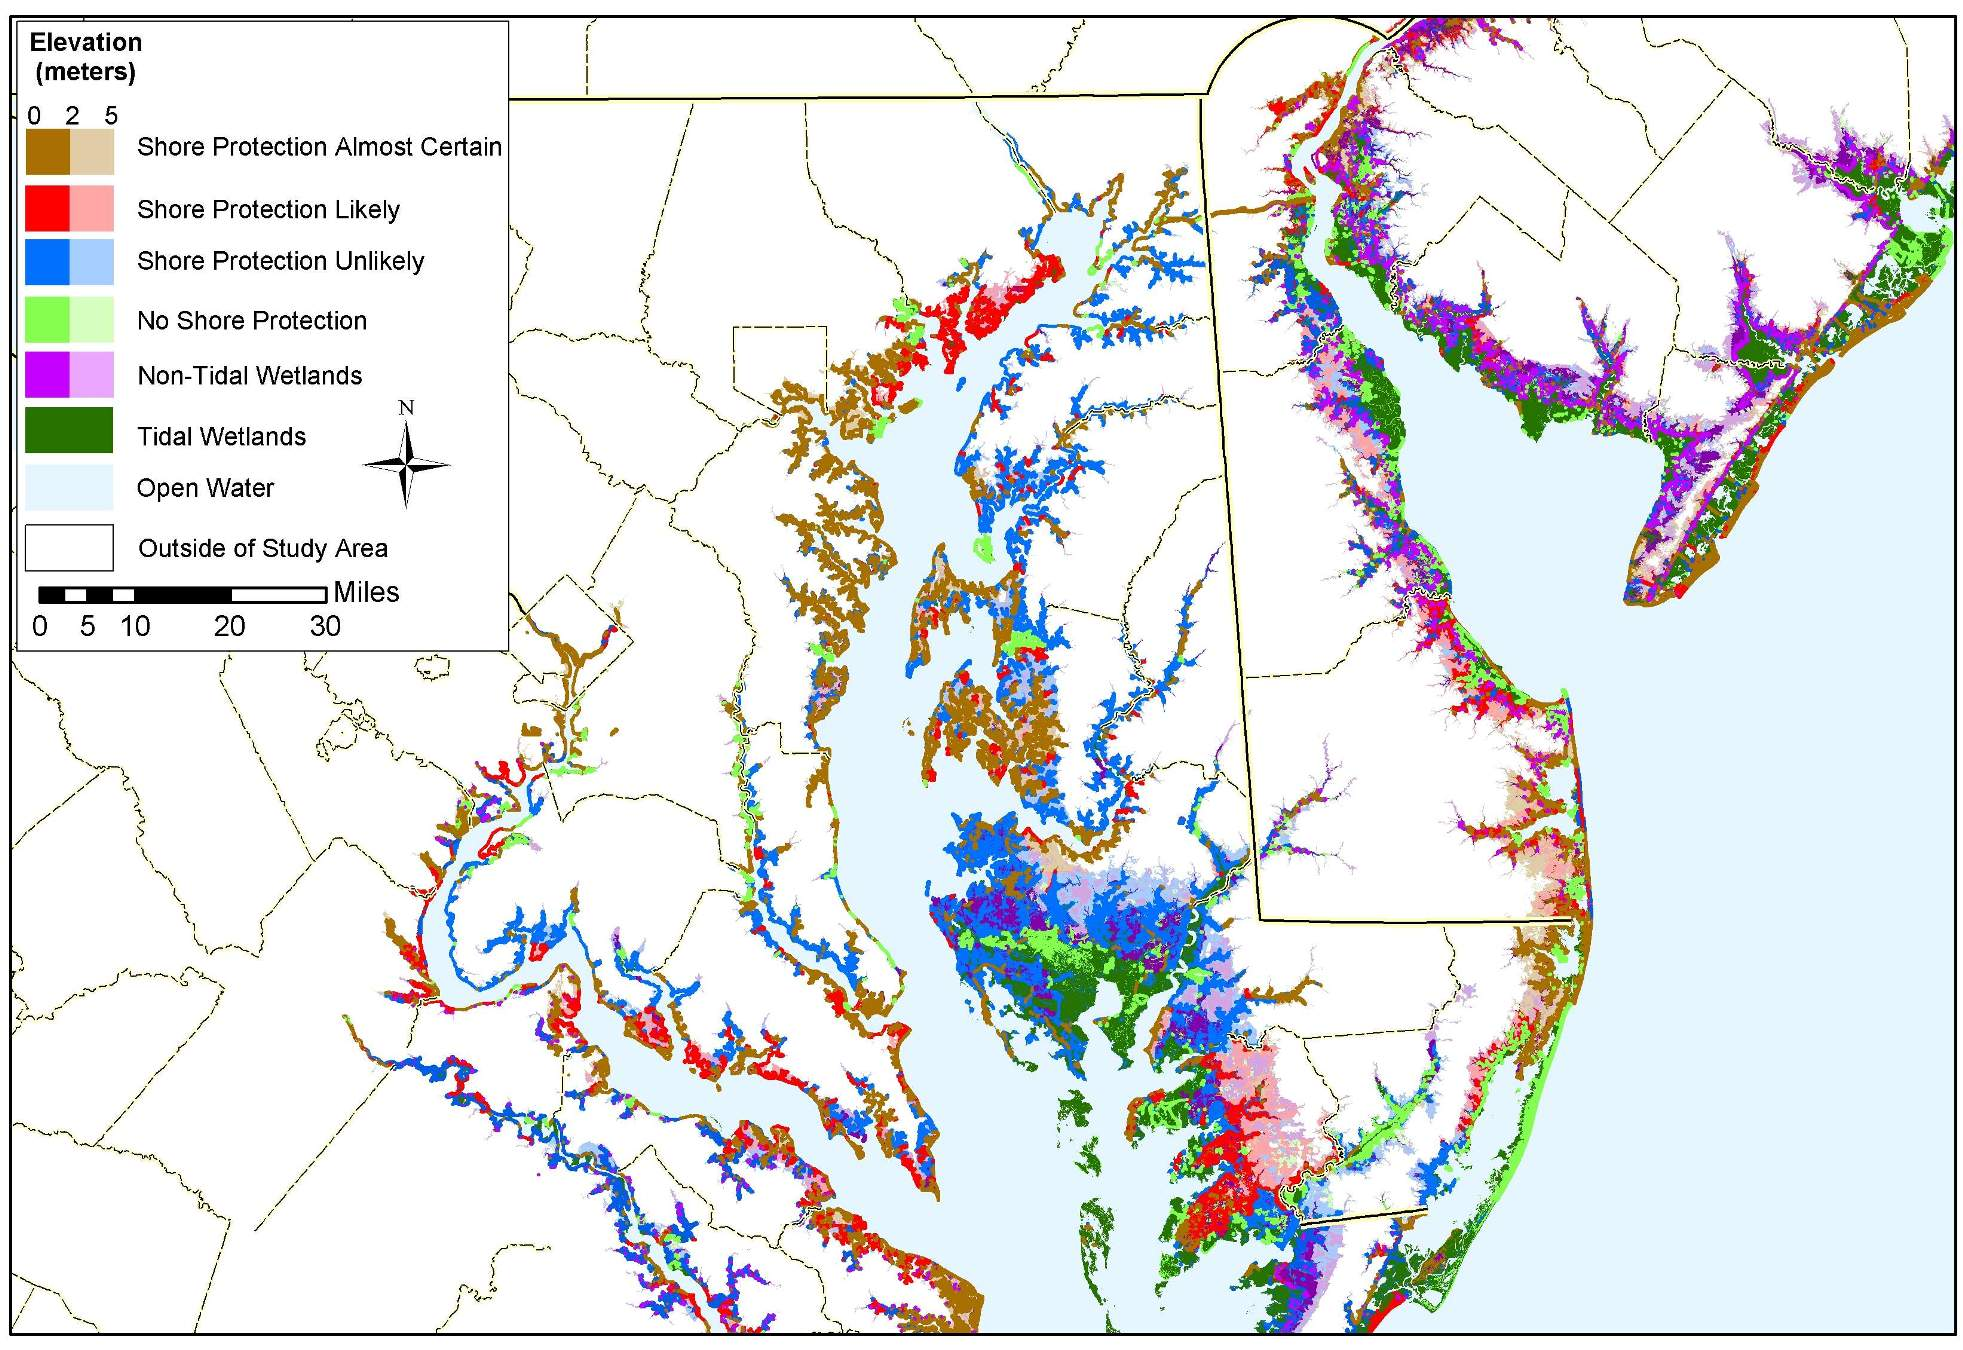 flood inundation map with S13 Md Statewide For Ccsp on Ancient Mesopotamia How The First Farms Began furthermore Hurricane Katrina in addition S13 MD statewide for CCSP also Flood plain maps houston texas together with Oroville Dam Is Also At Seismic Risk 2538.